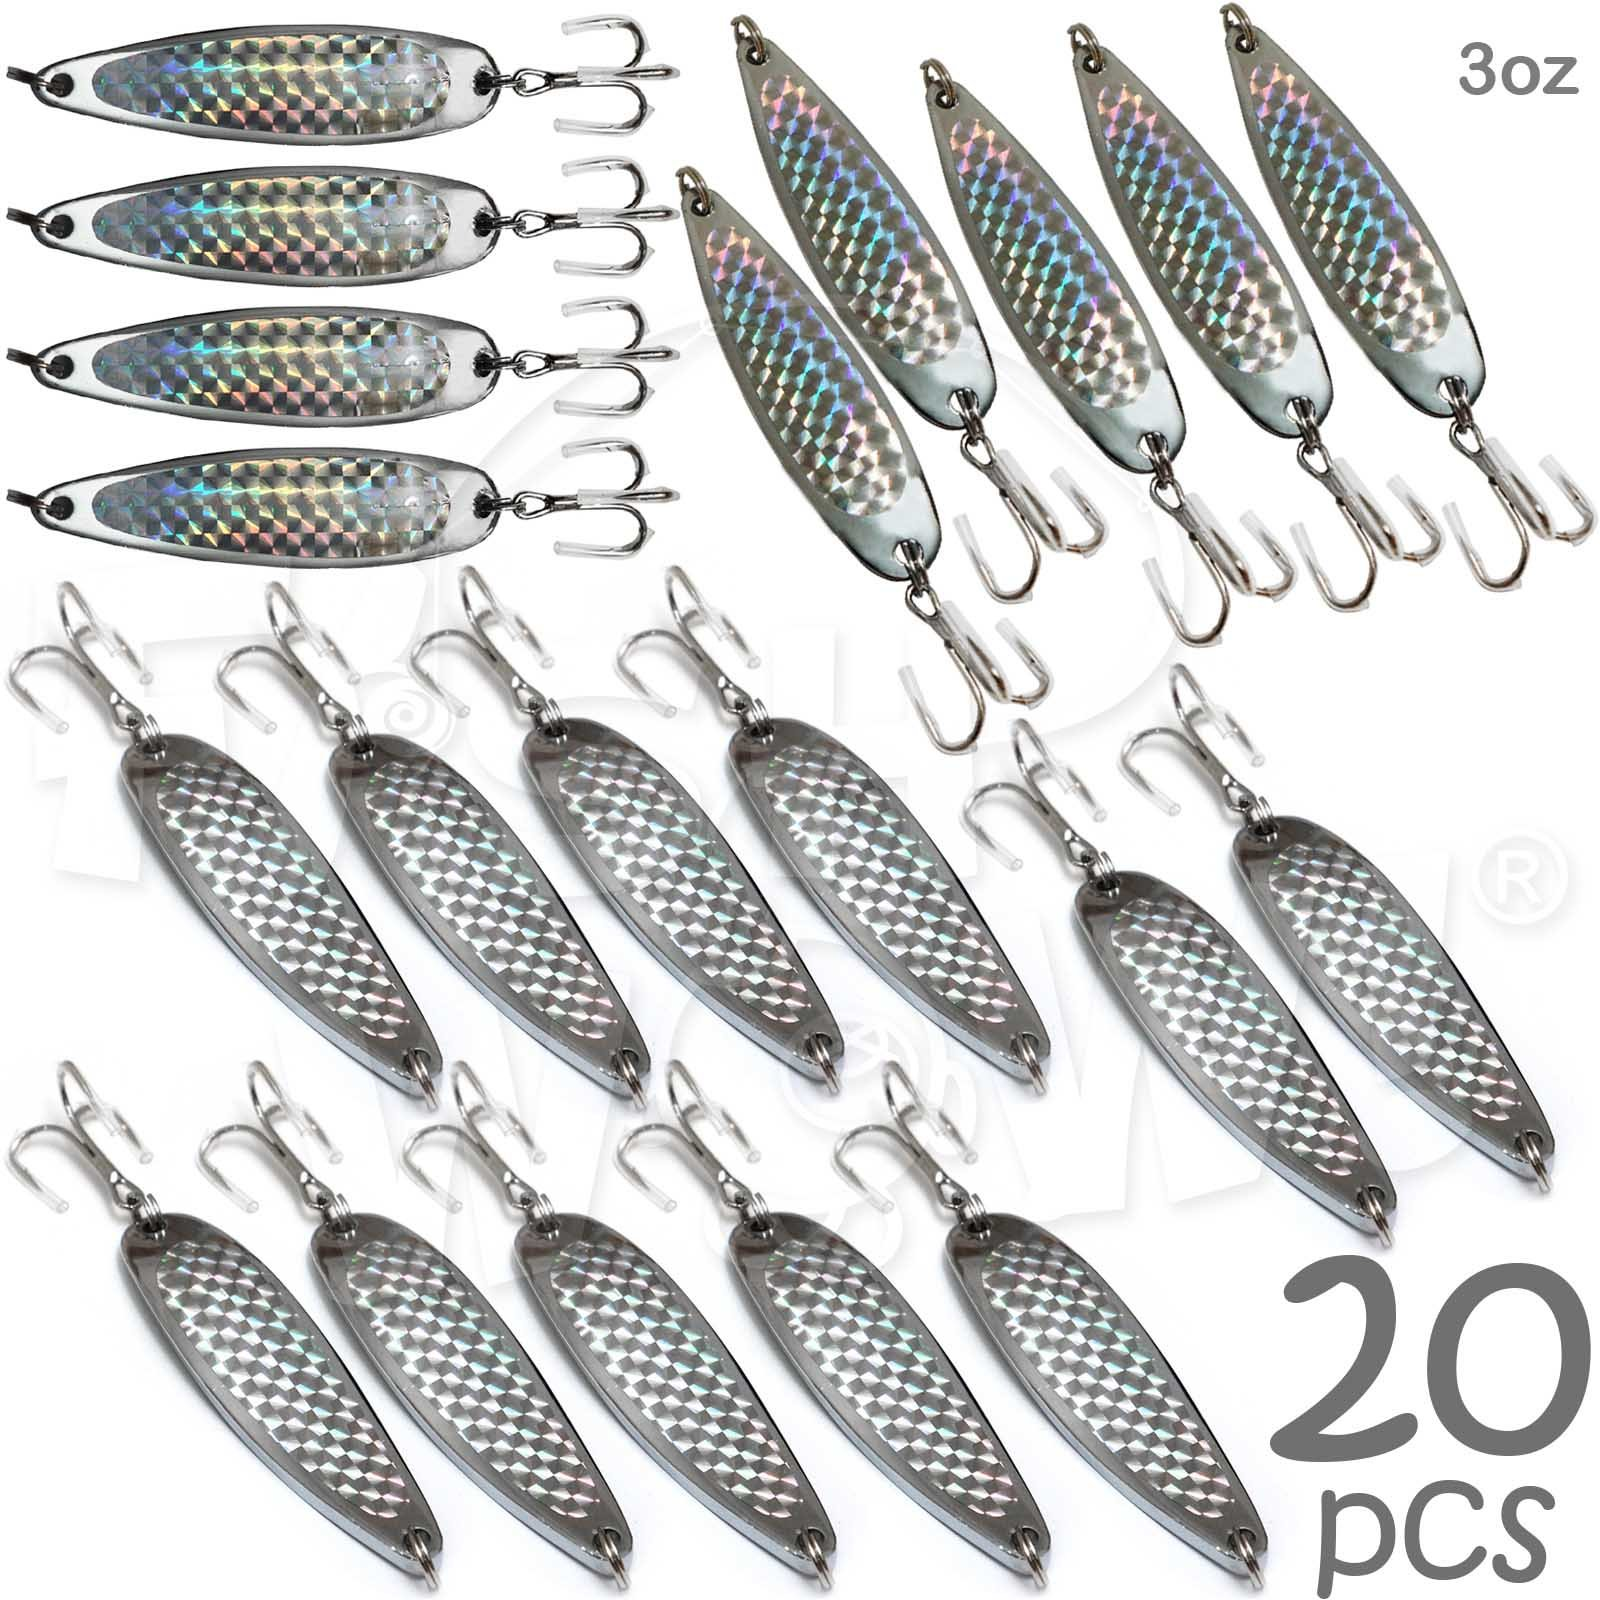 Fish WOW! 20pcs 3oz Fishing Spoon with a Treble Hook 85g Fish Jigging Casting Lure Baits - Silver Tape